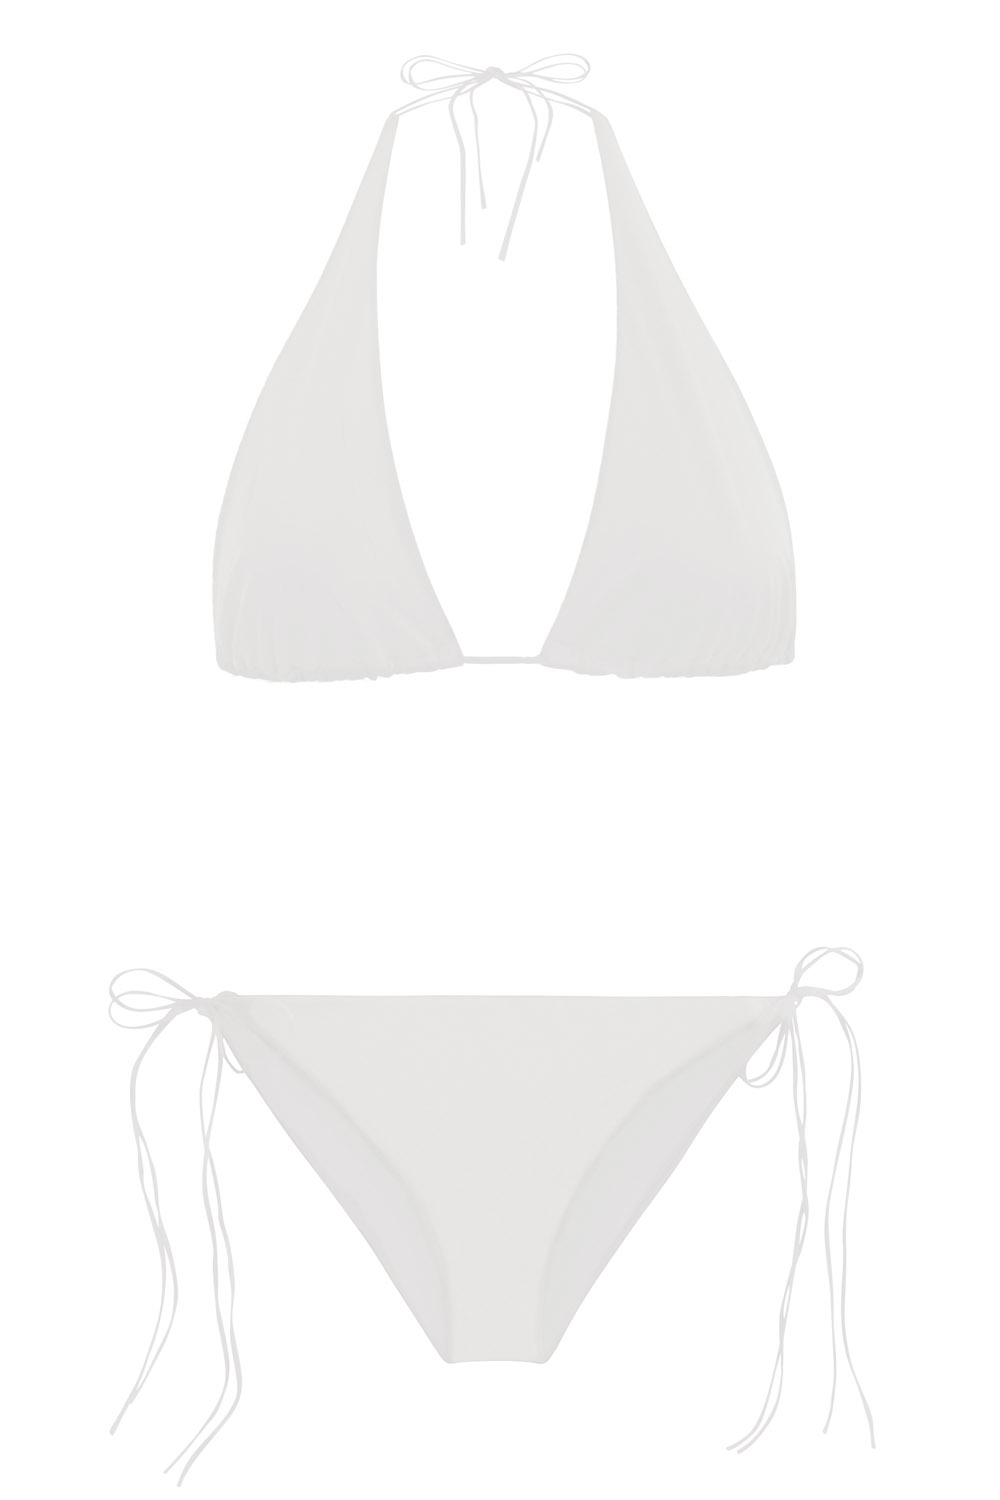 Sustainable Luxury Swimwear / Ropa de baño sostenible, eco bikini / bikini ecológico. Hermigua + St.John in shell, by NOW_THEN